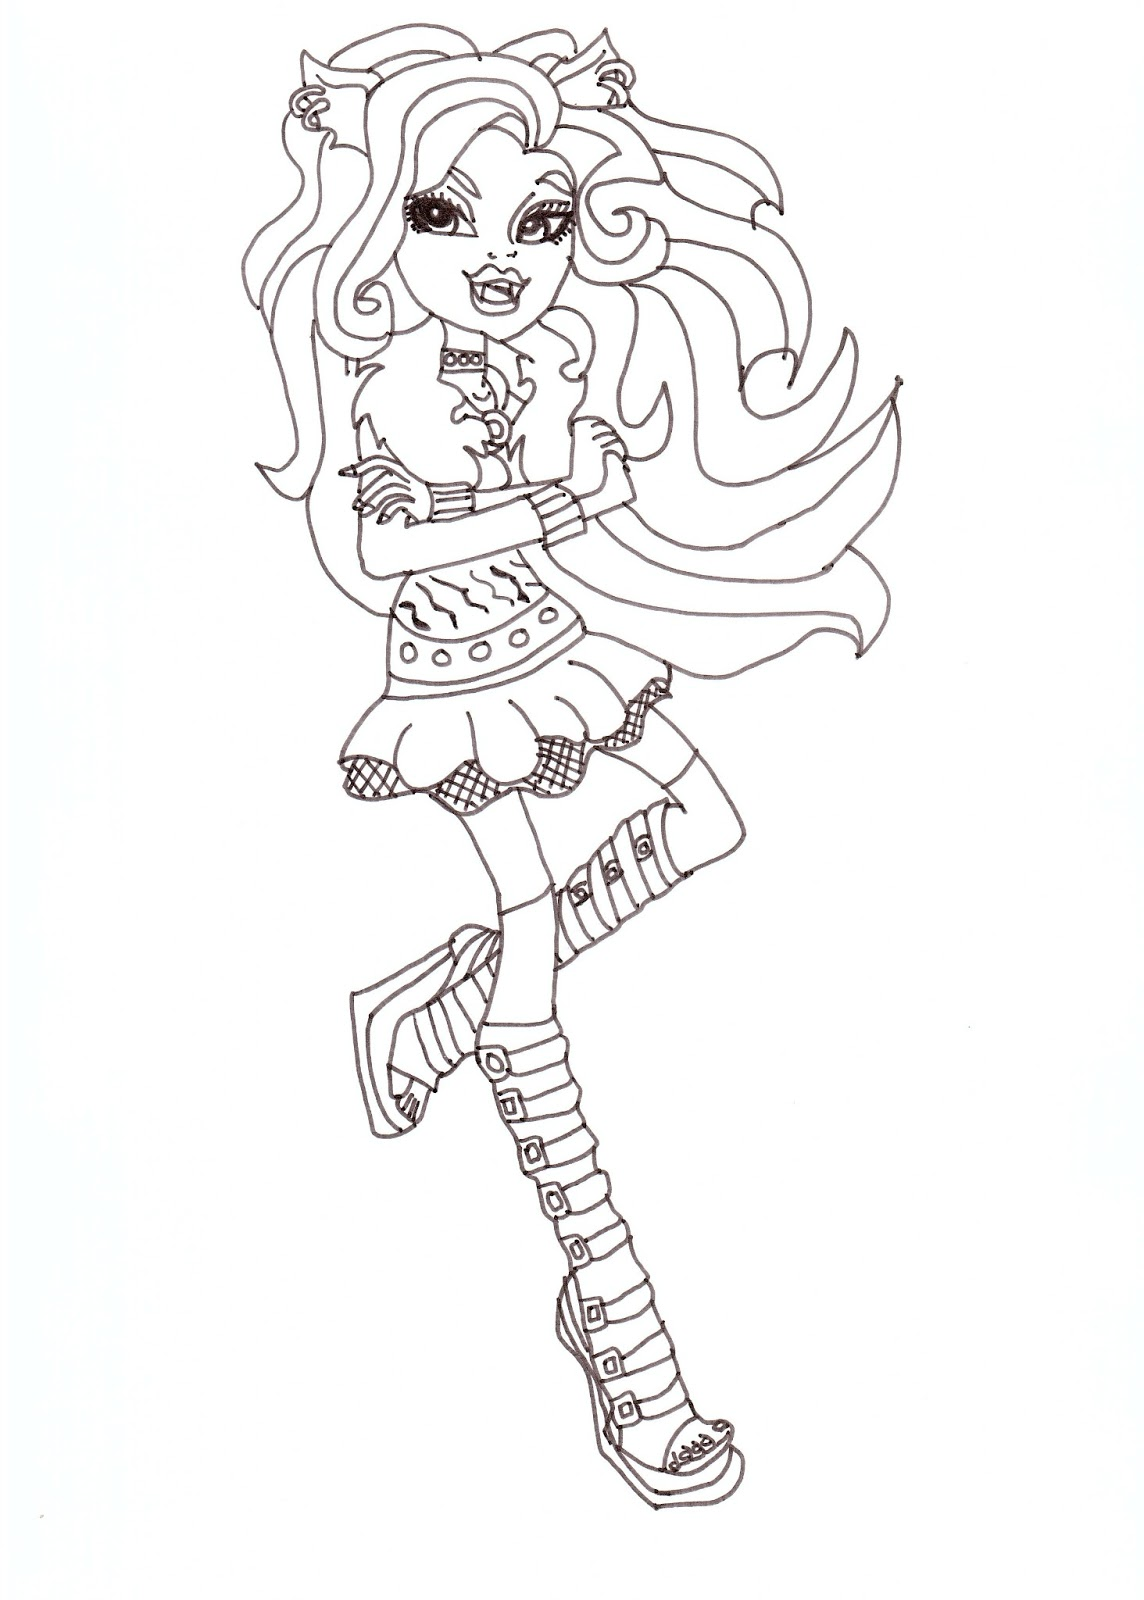 Free Printable Monster High Coloring Pages: January 2013